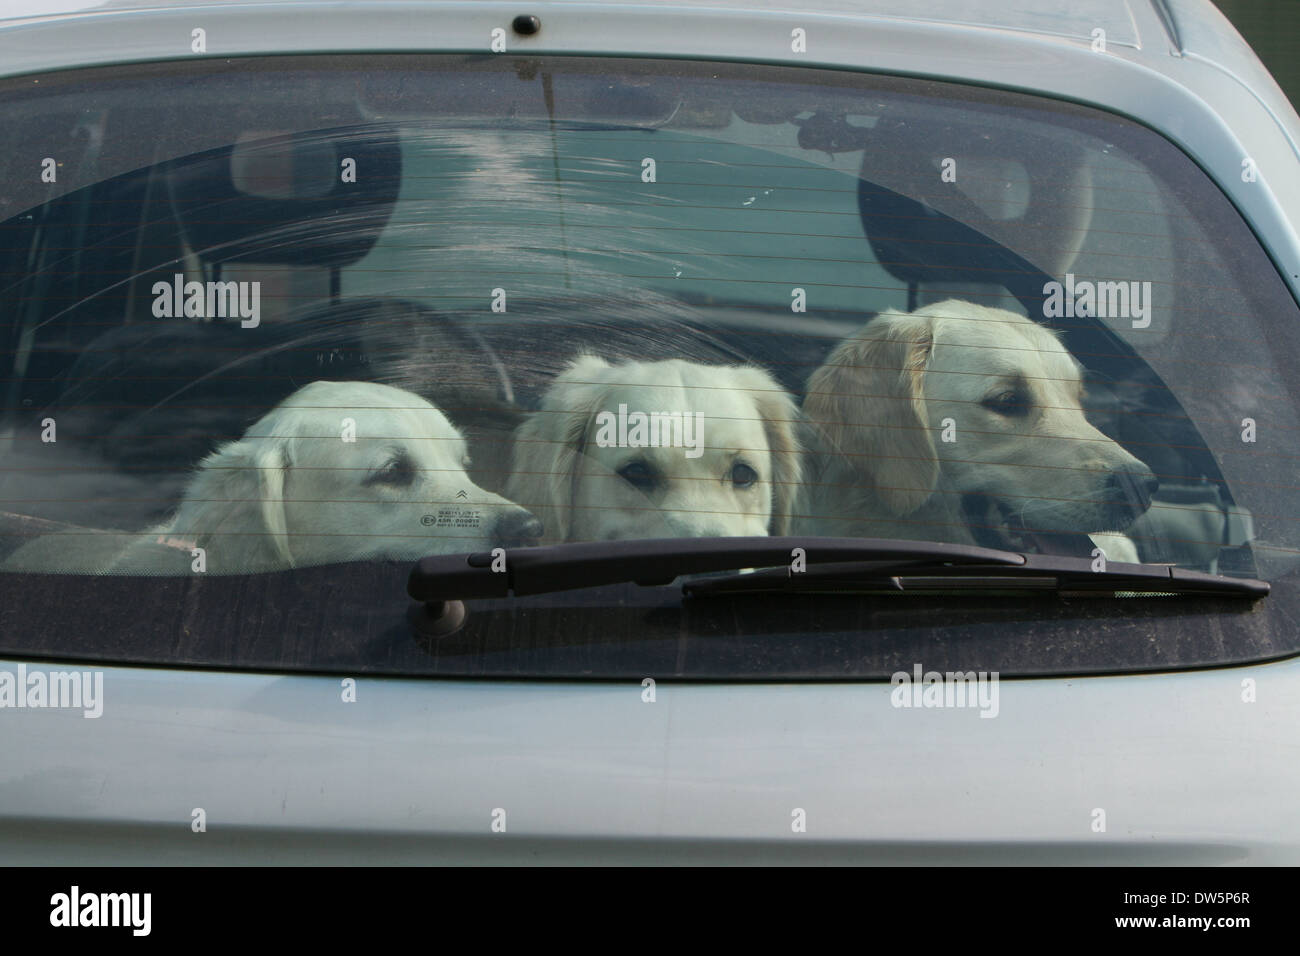 Dog Golden Retriever / three adults in a car looking out window - Stock Image